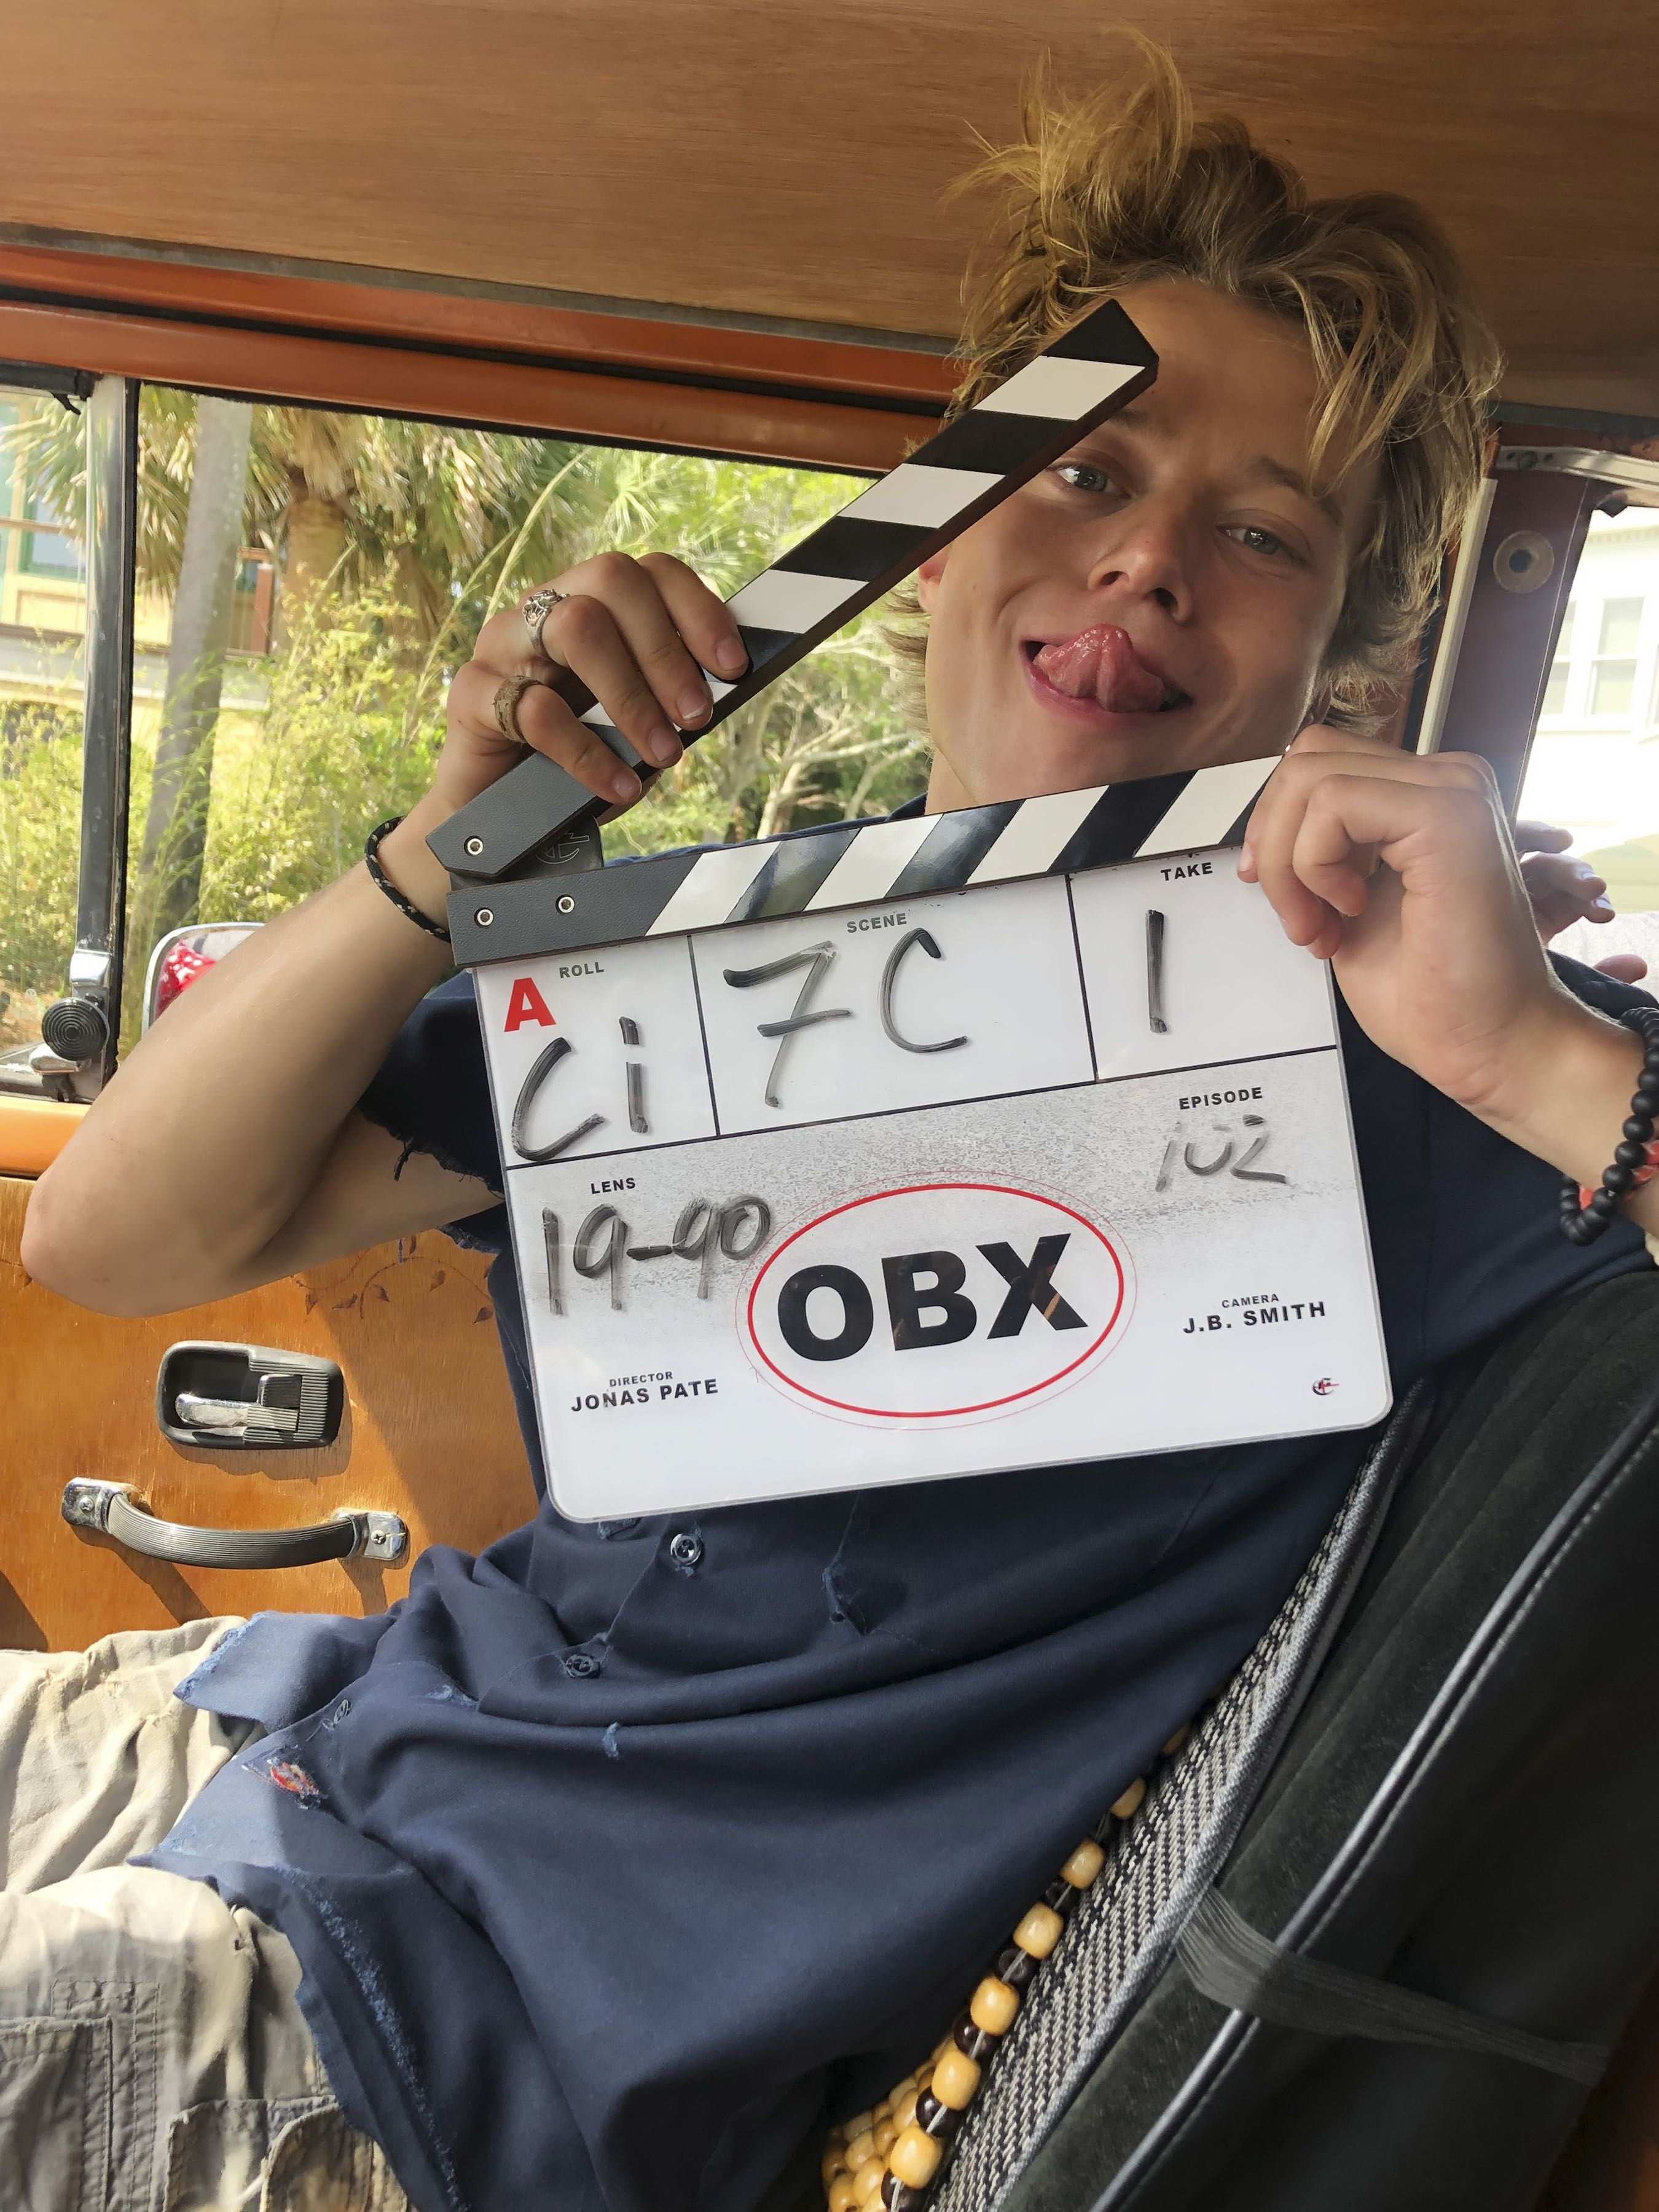 Rudy Pankow sticking his tongue out with a clapboard behind the scenes of Outer Banks